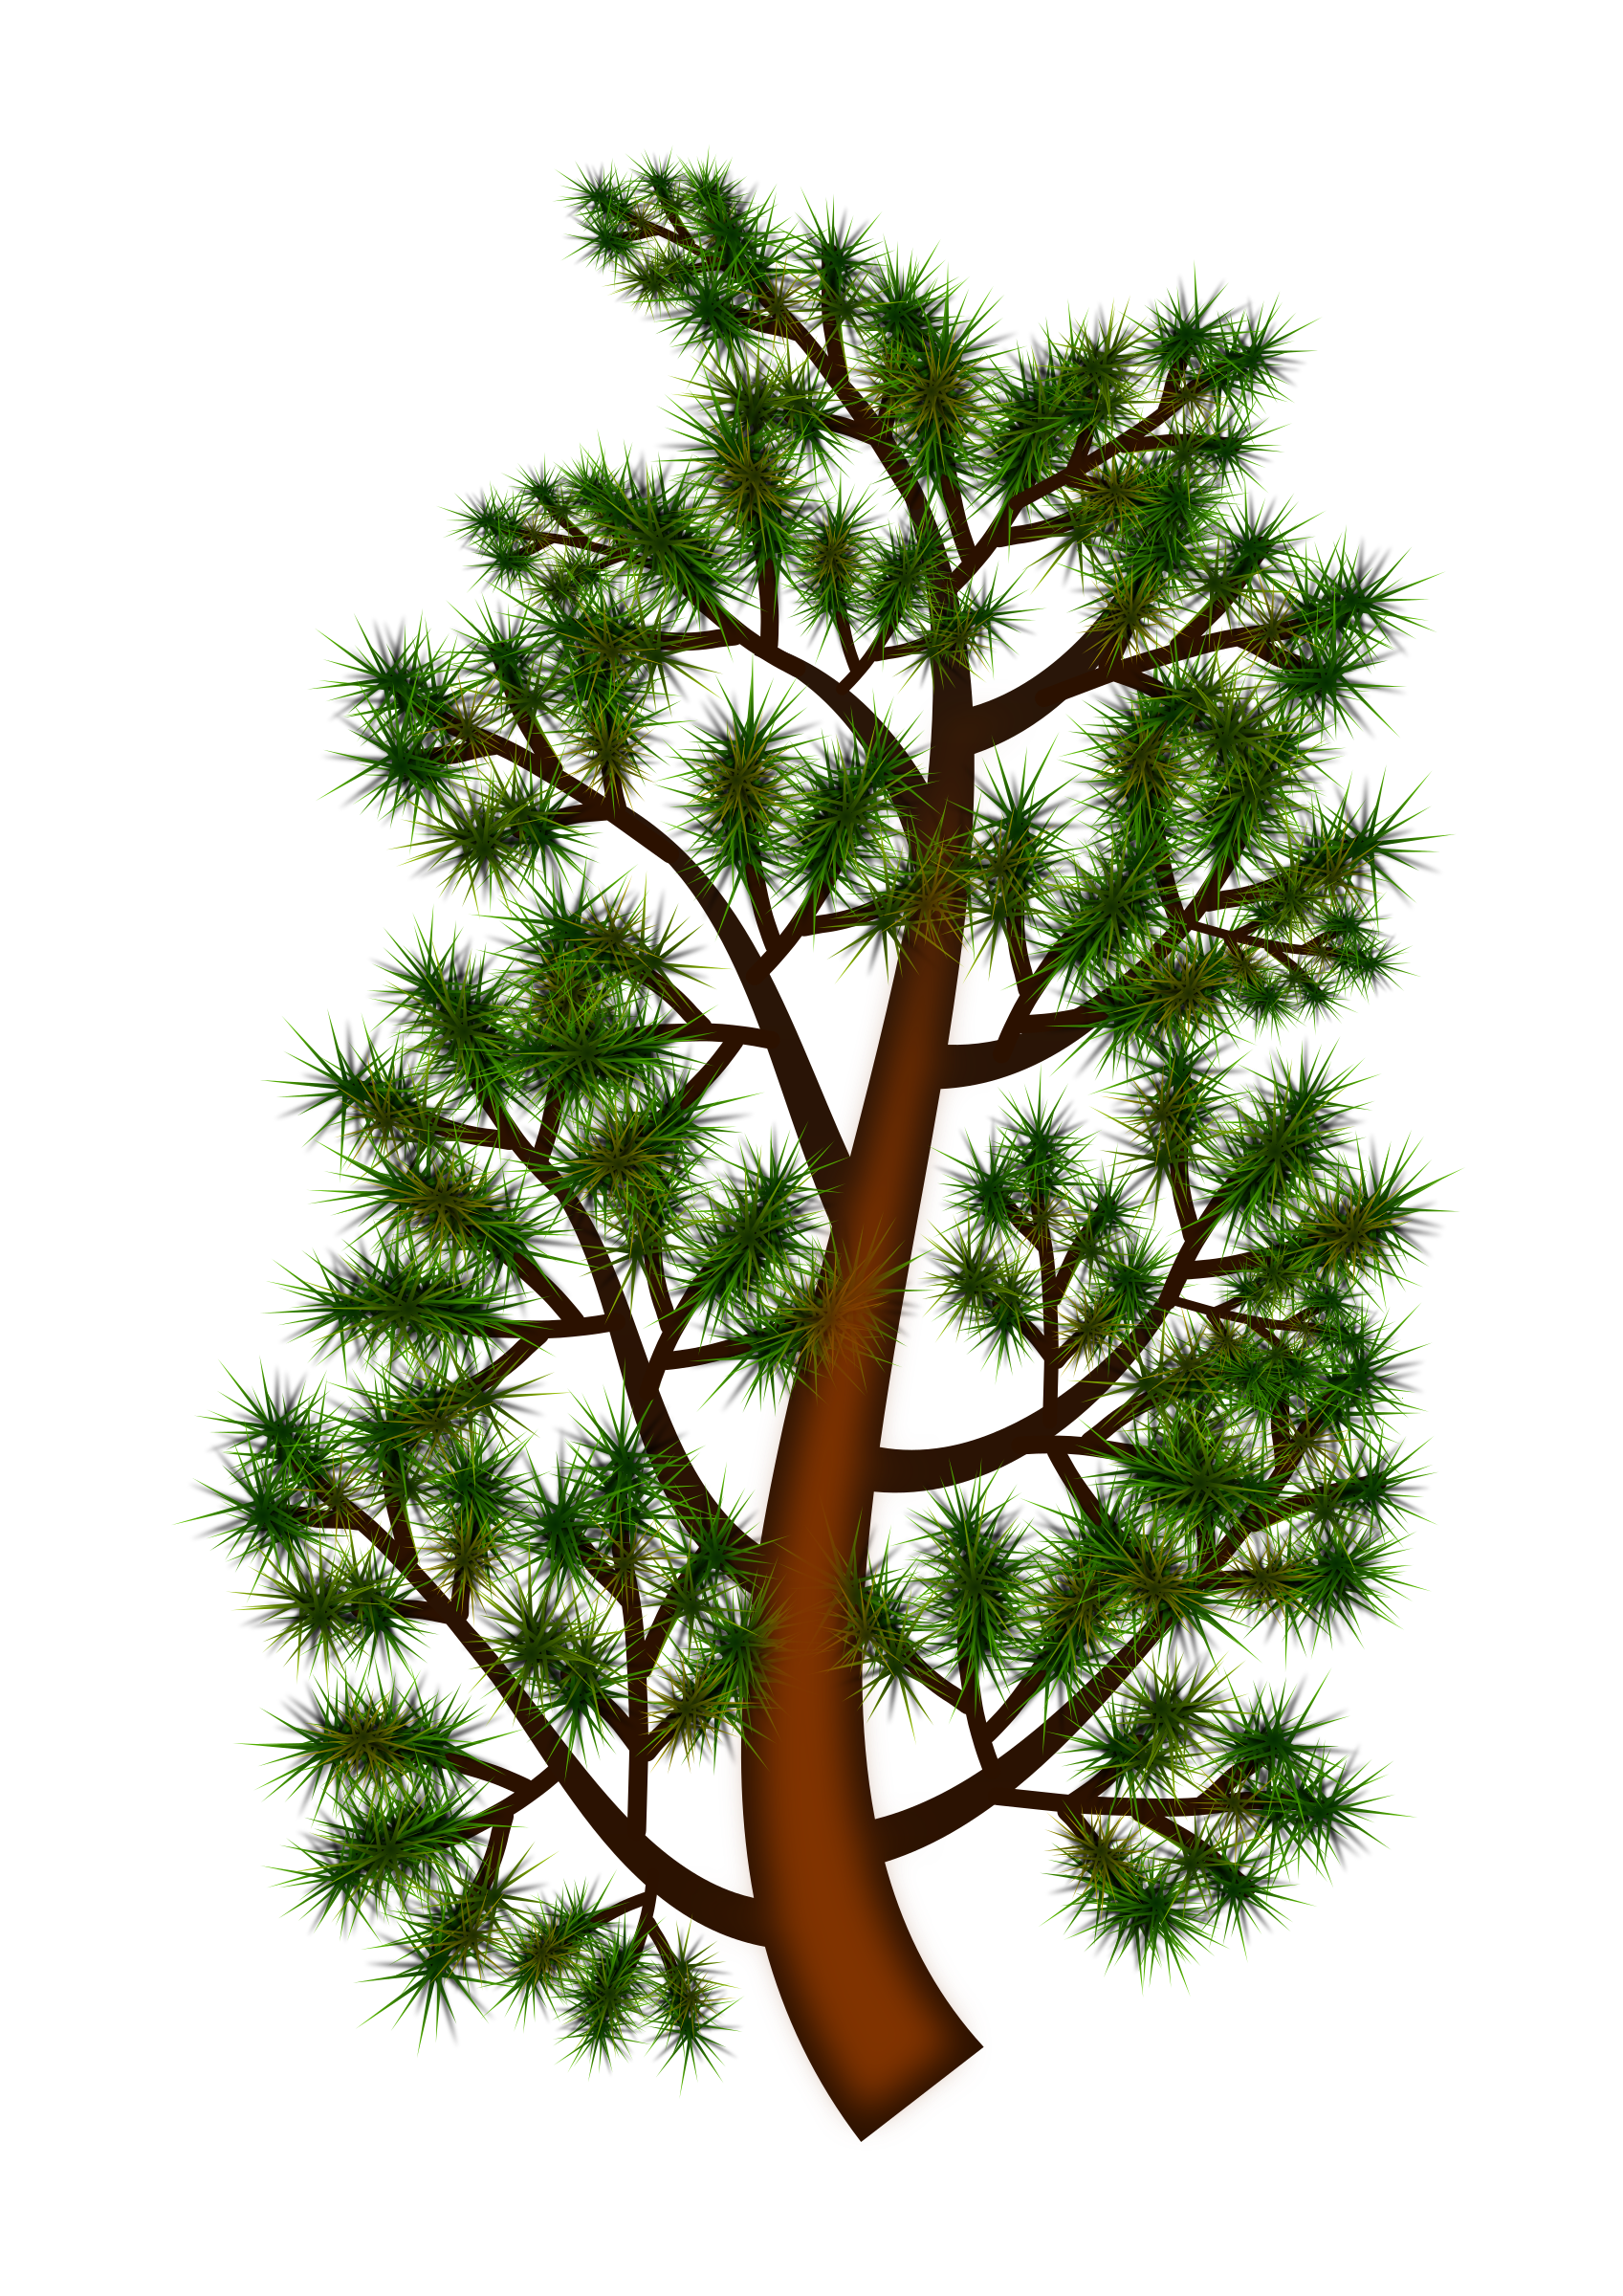 Loblolly pine tree branch clipart banner transparent Clipart - Pine tree branch banner transparent